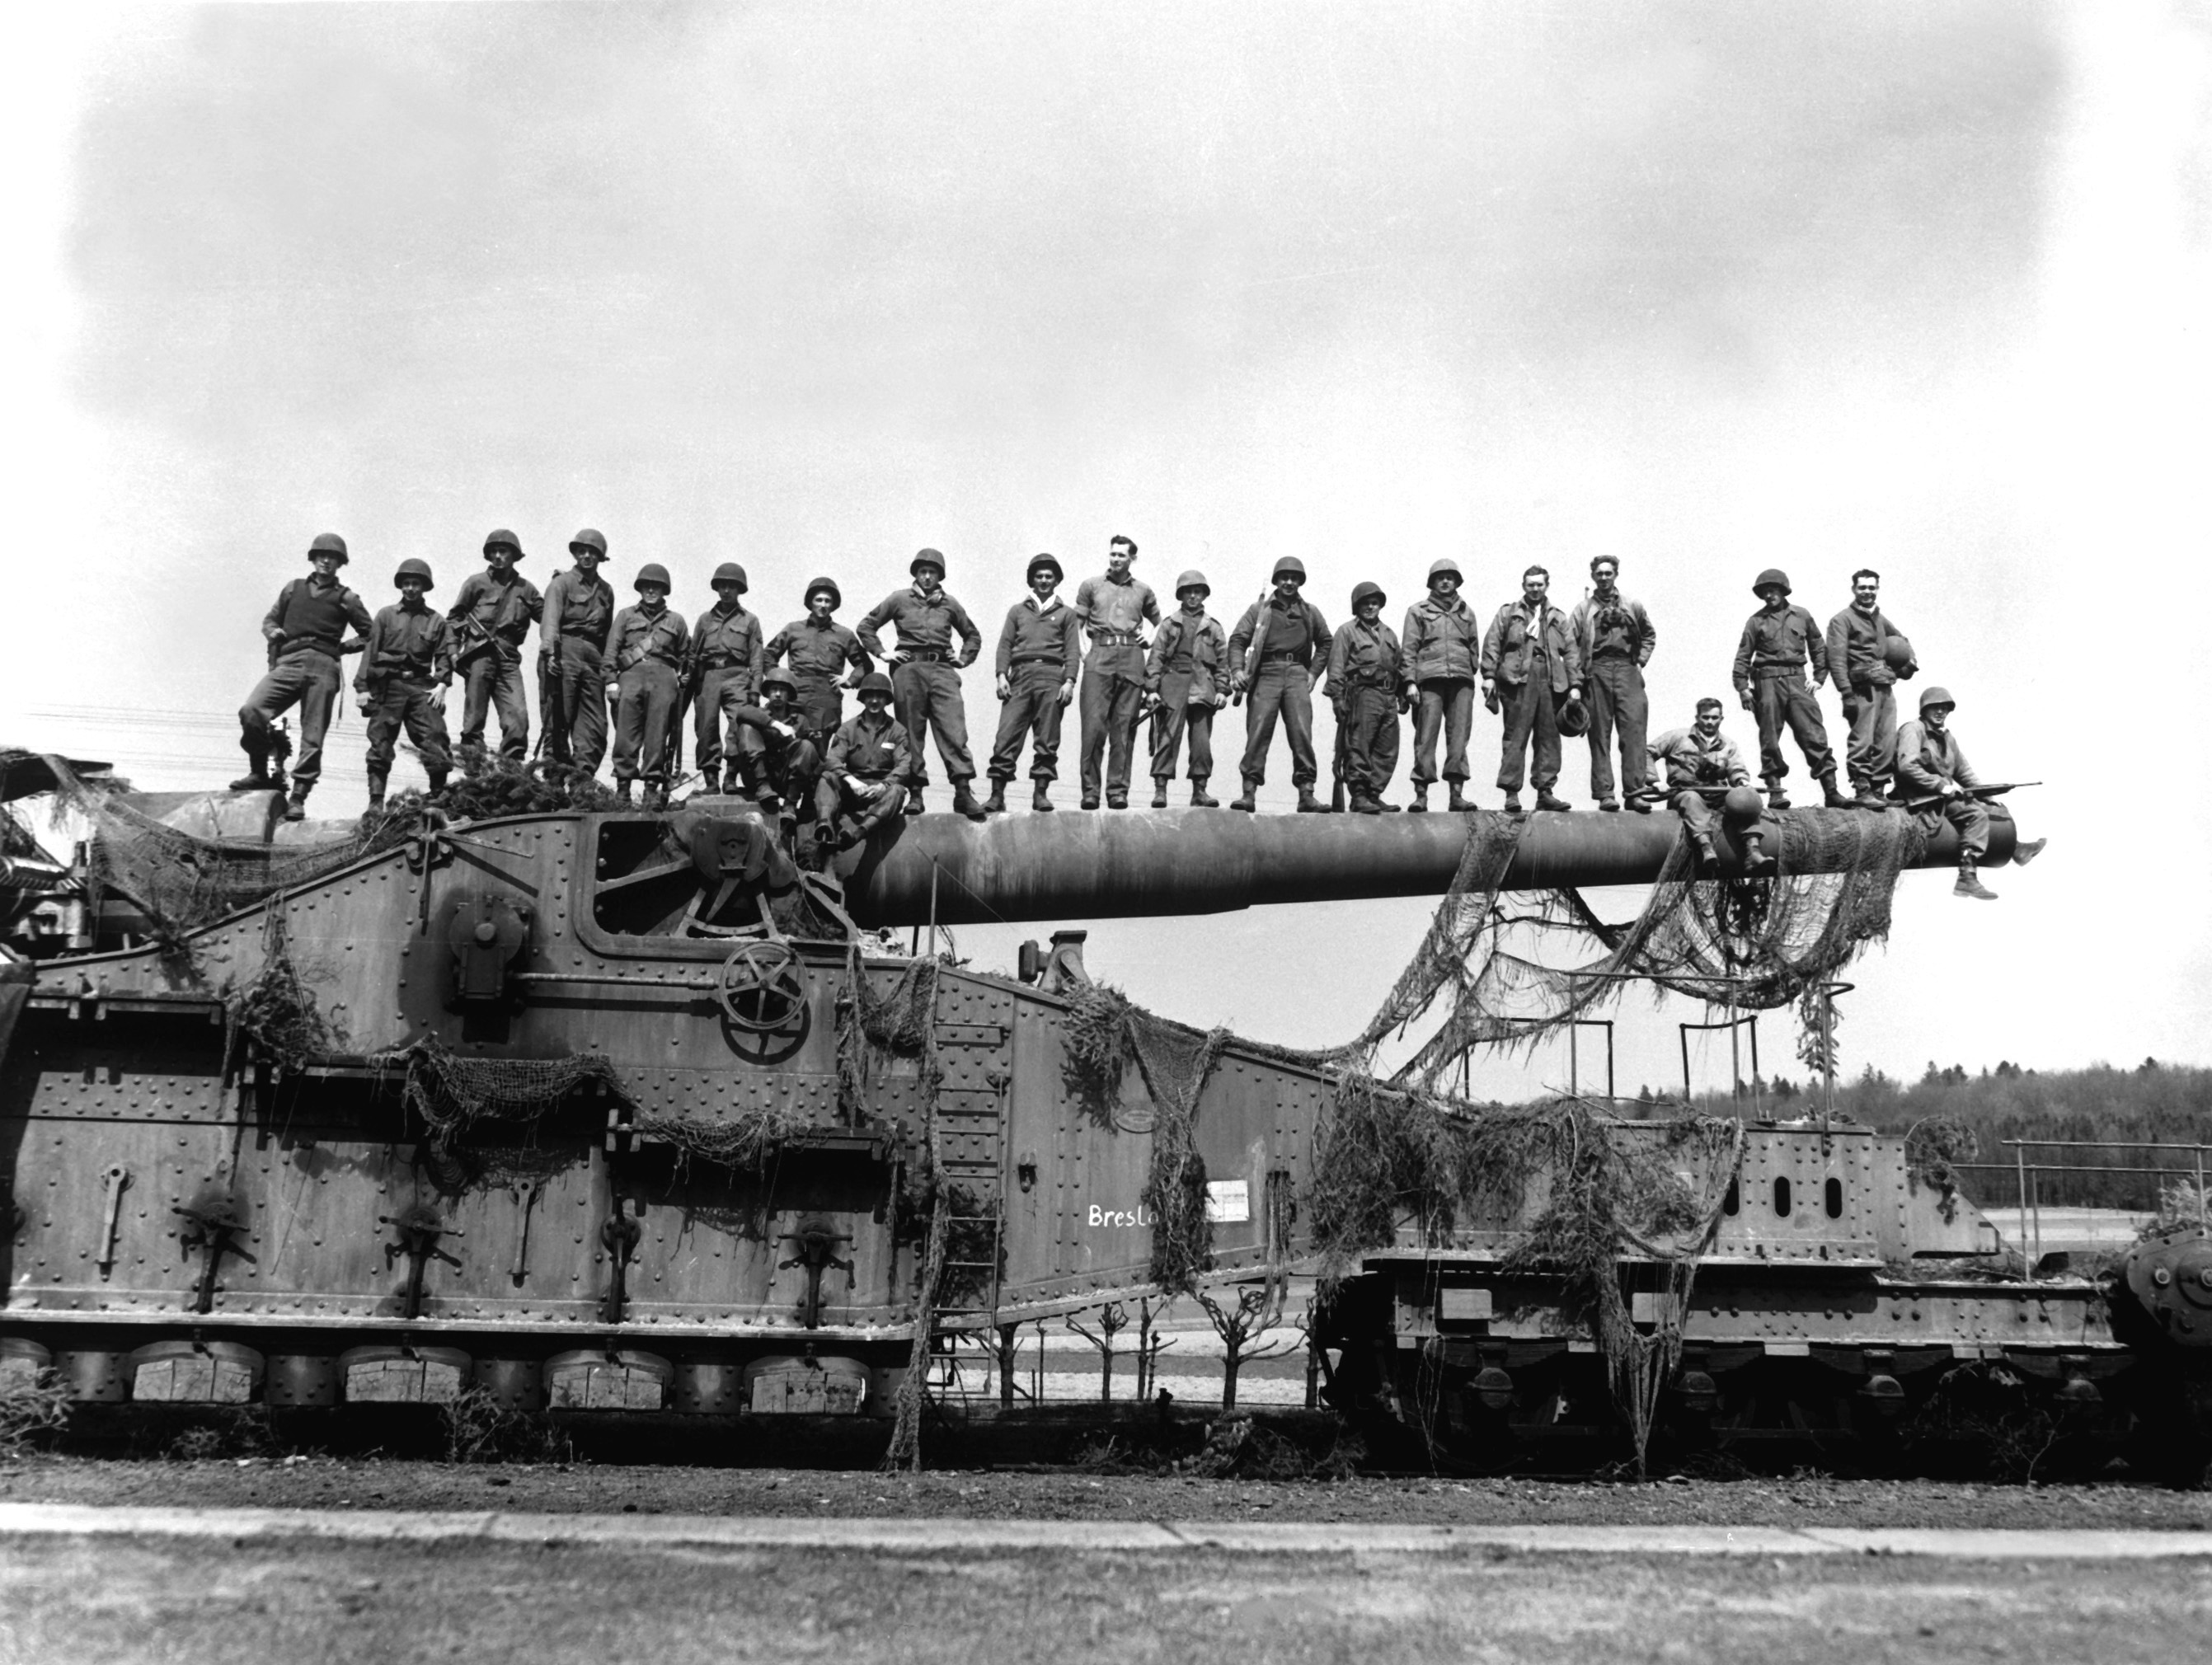 274mm45 railroad gun captured Apr1945.jpeg